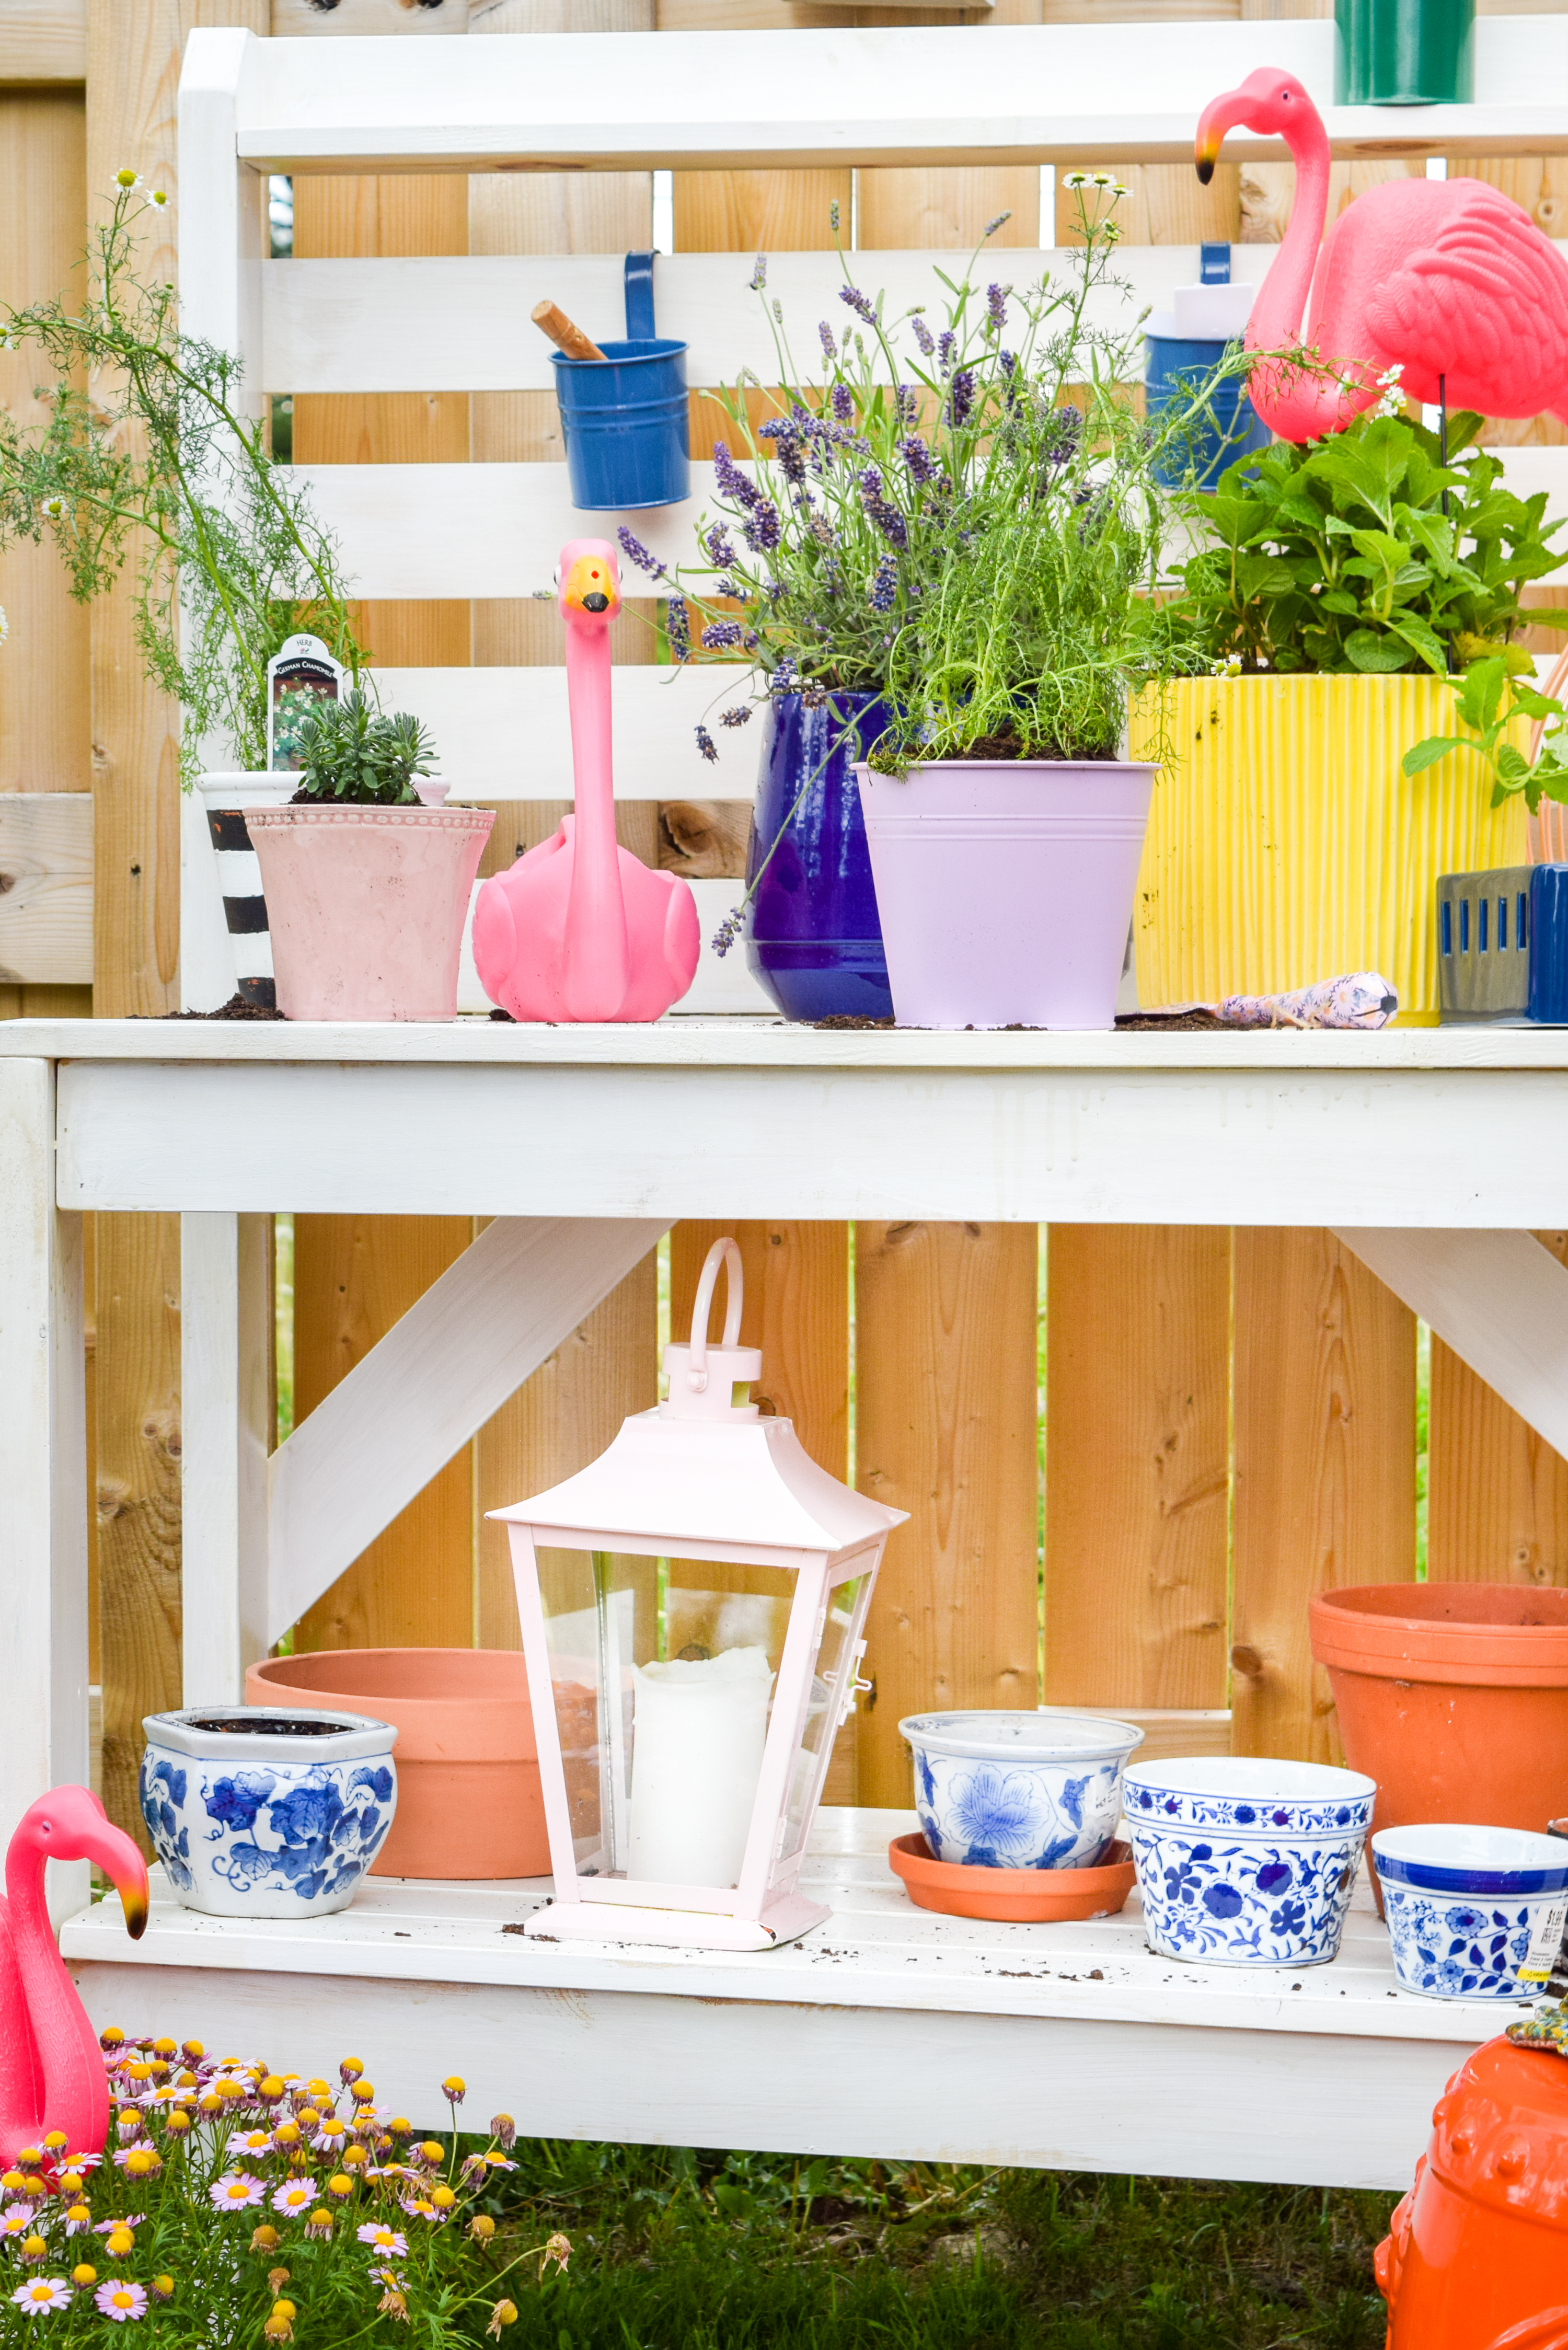 Looking for mosquito relief without all the candles and sprays? Try these mosquito repellent planters full of herbs and plants that keep them at bay. While you're at it, give your potting bench an update with a stylish white wash and a proper top coat to see it through the weather.